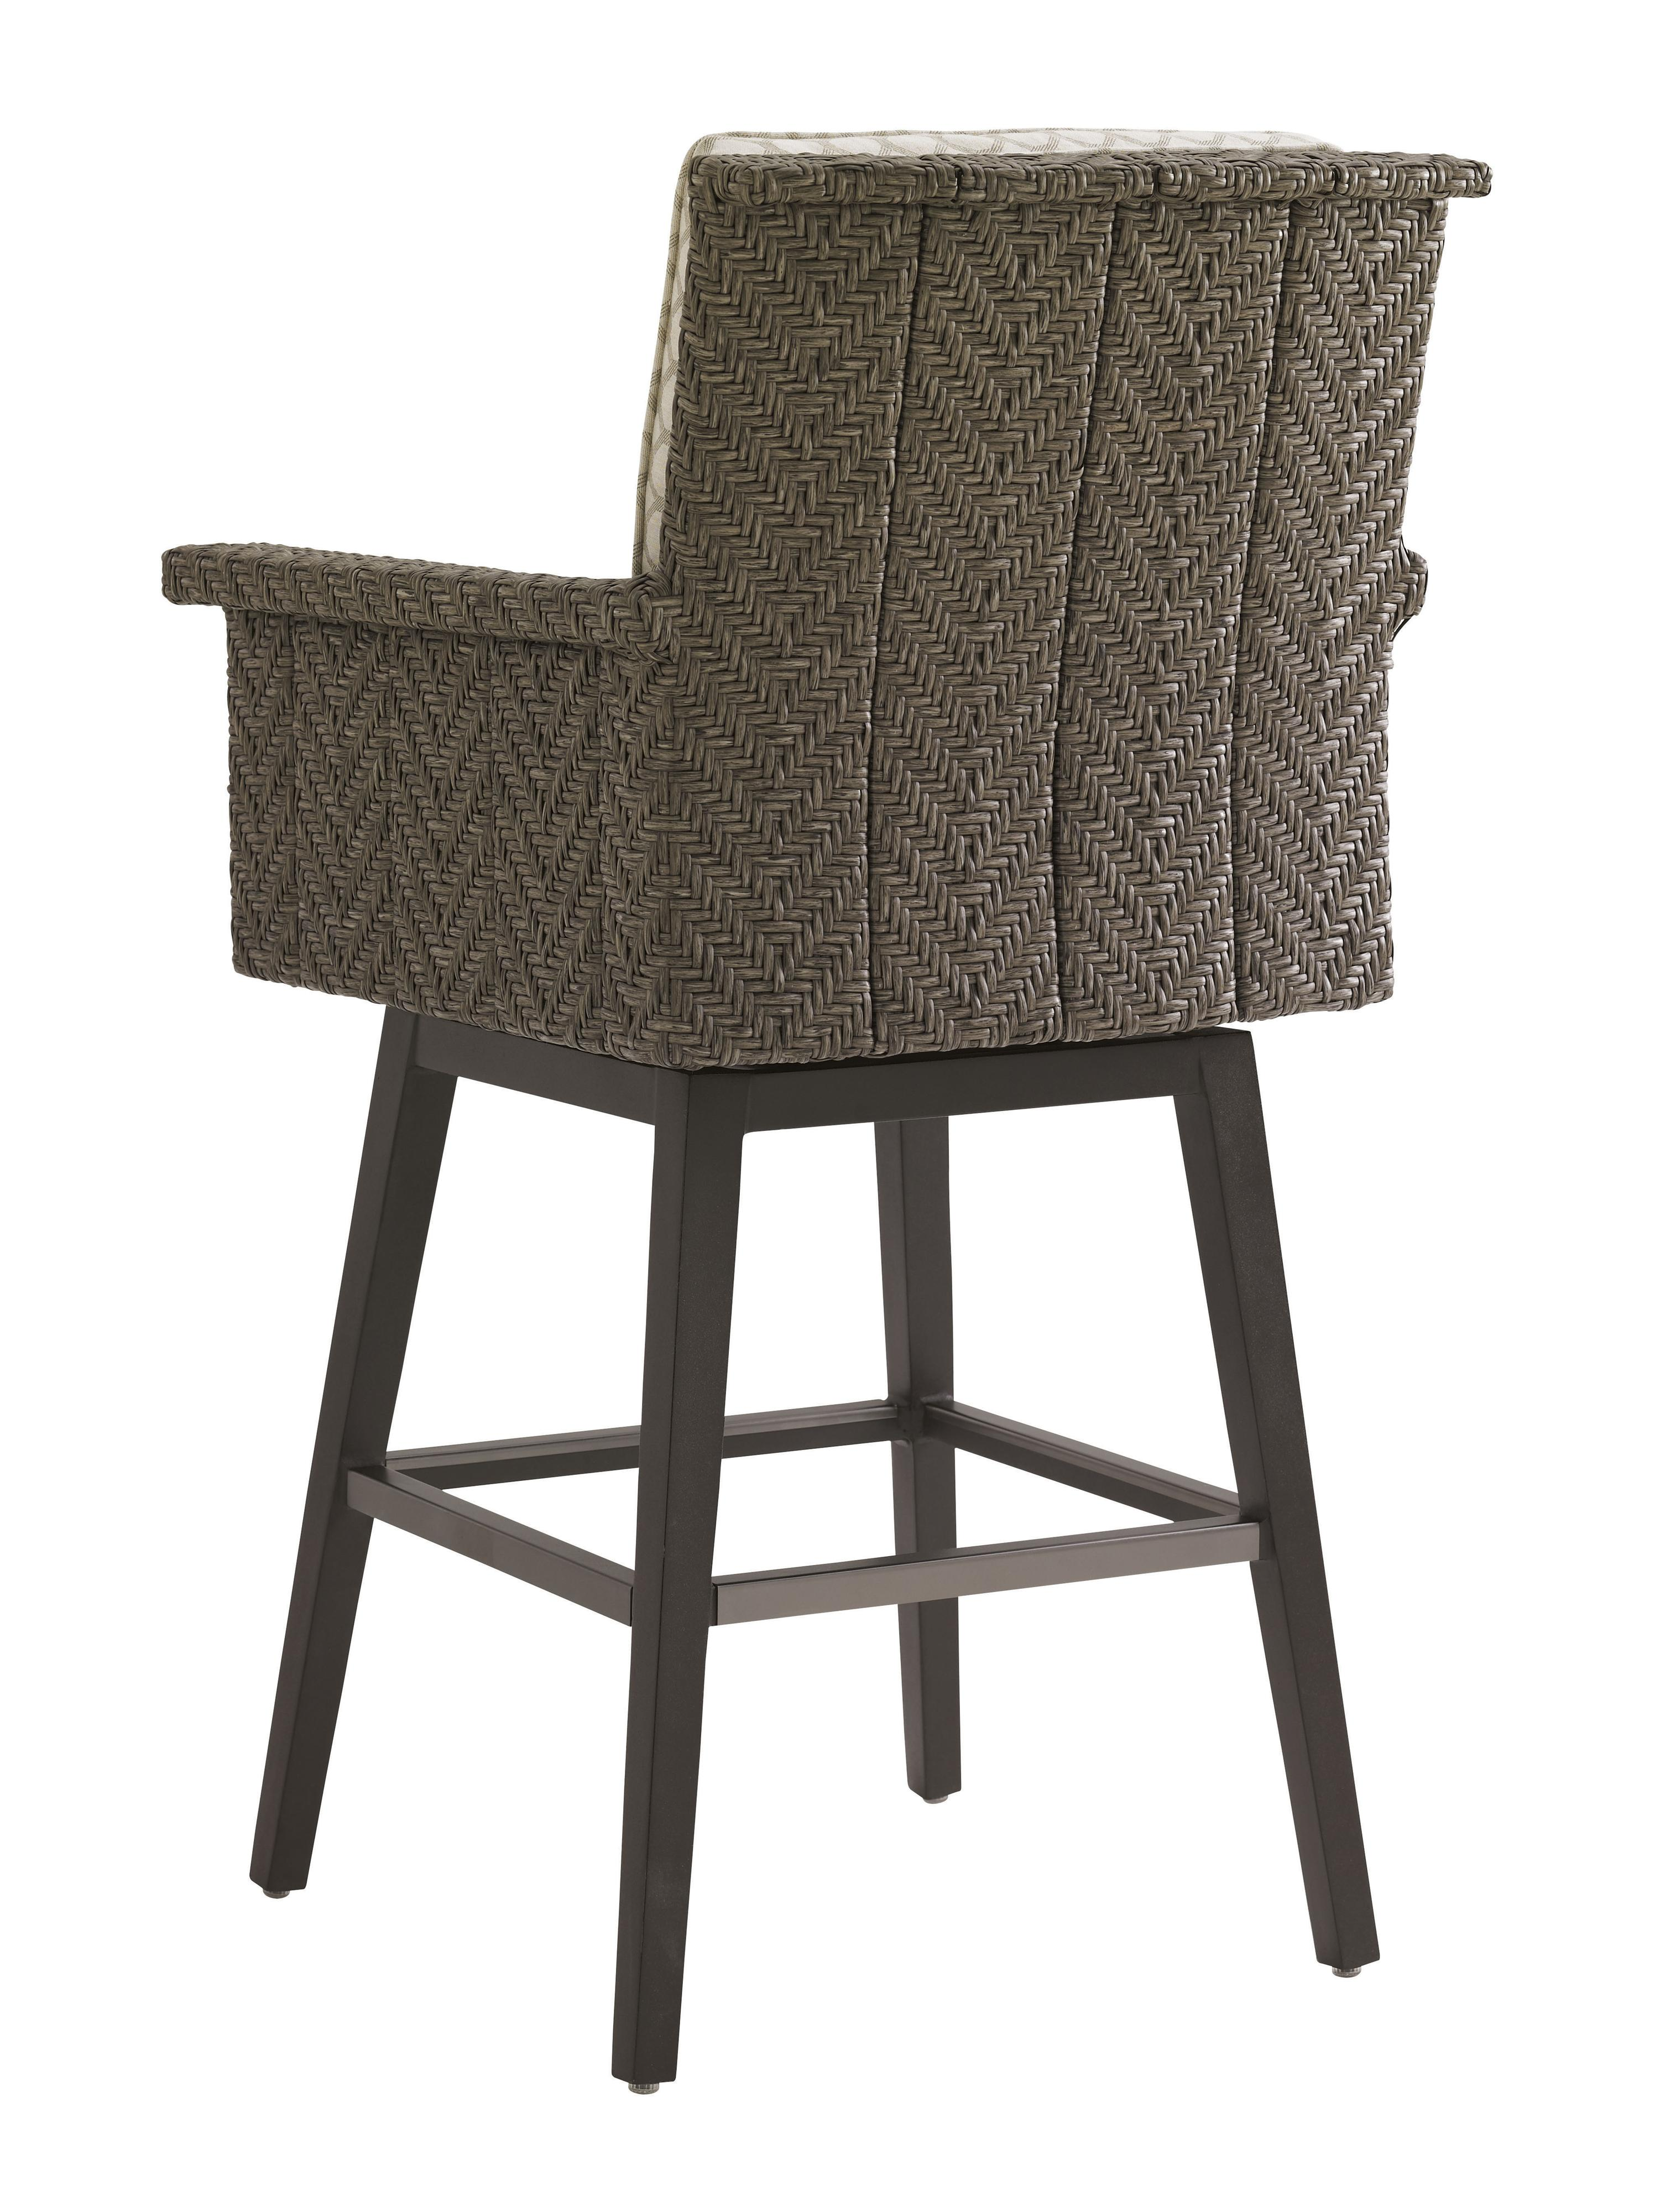 Tommy Bahama Outdoor Living Blue Olive Swivel Bar Stool With Cushion Jacksonville Furniture